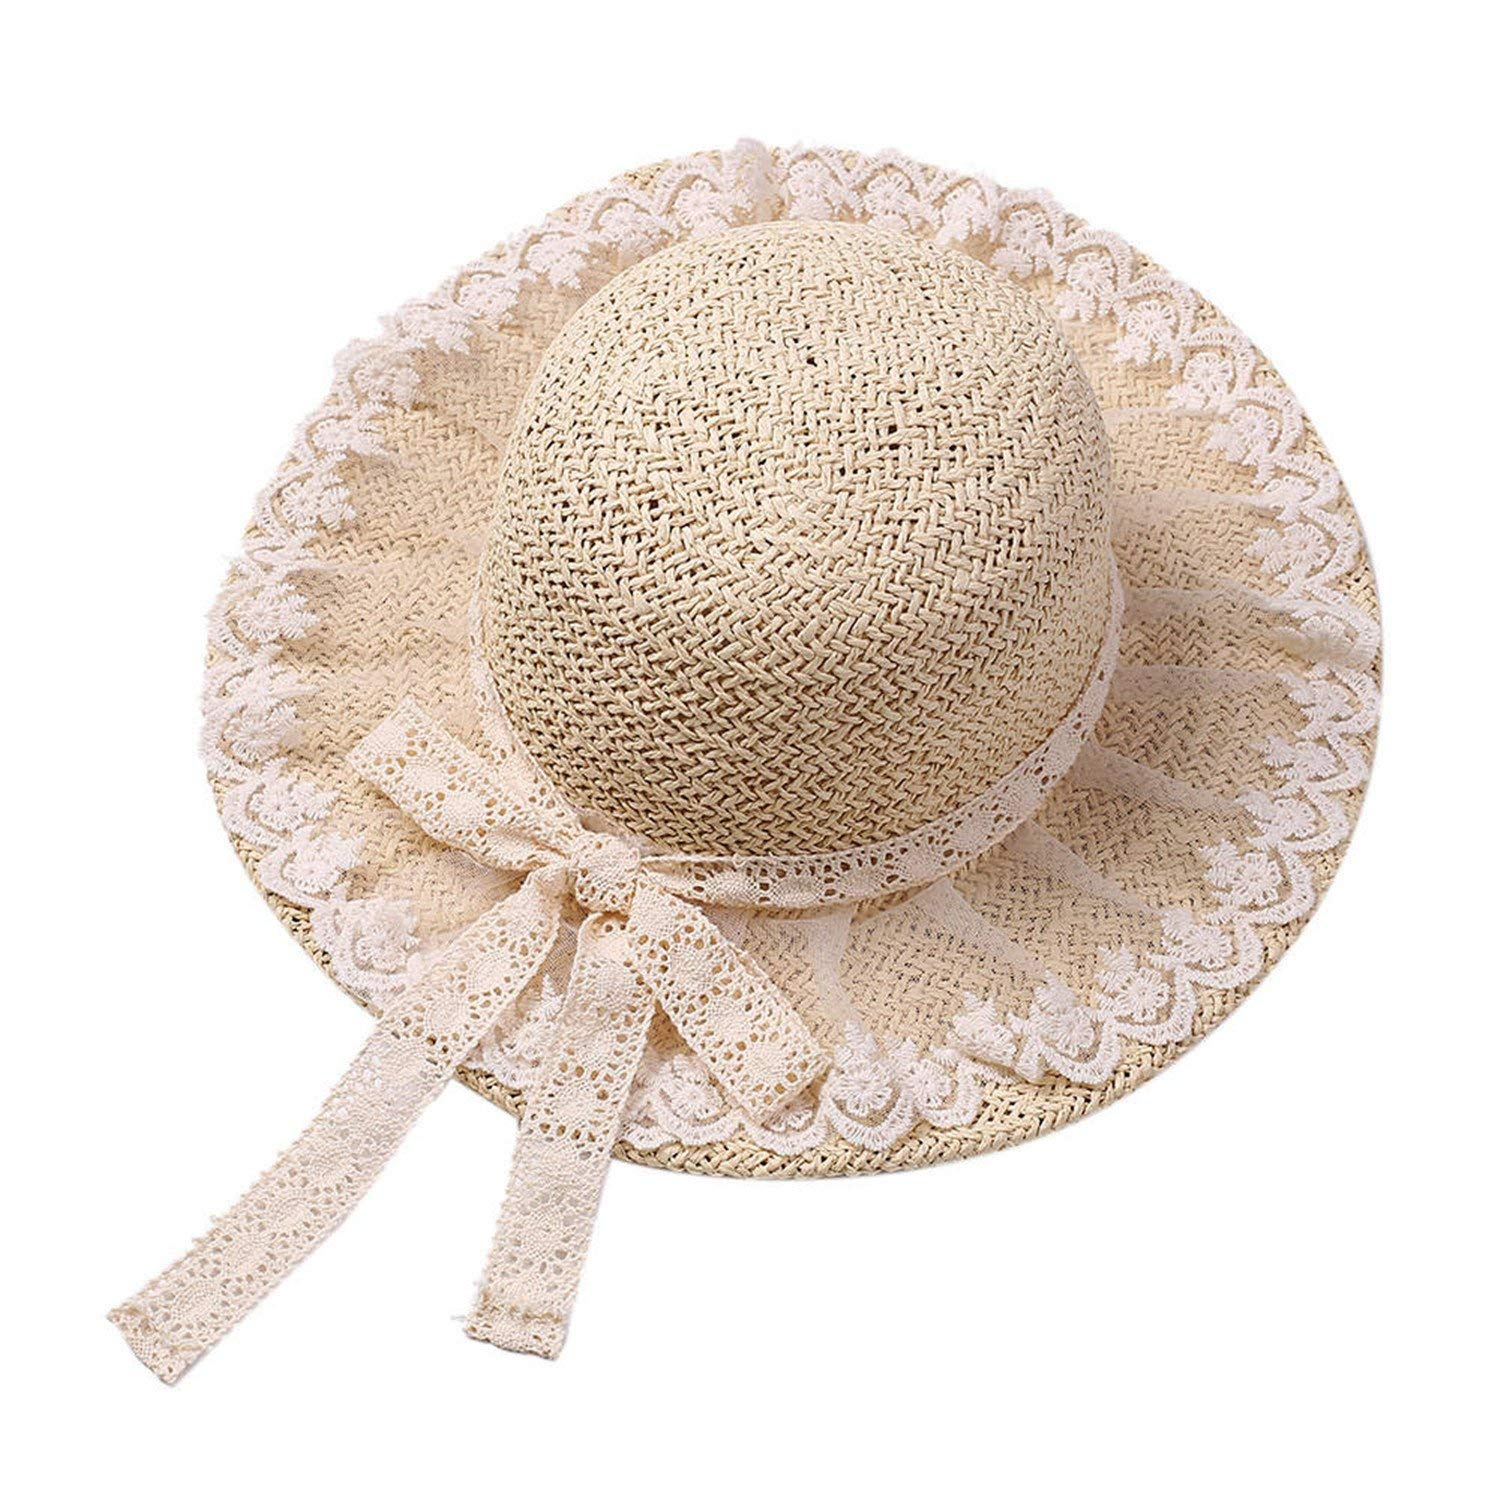 e388b5cbb71 Get Quotations · New Summer Women Floppy Straw Sun Hat with Lace Bow Big  Wide Brim Lace up Caps